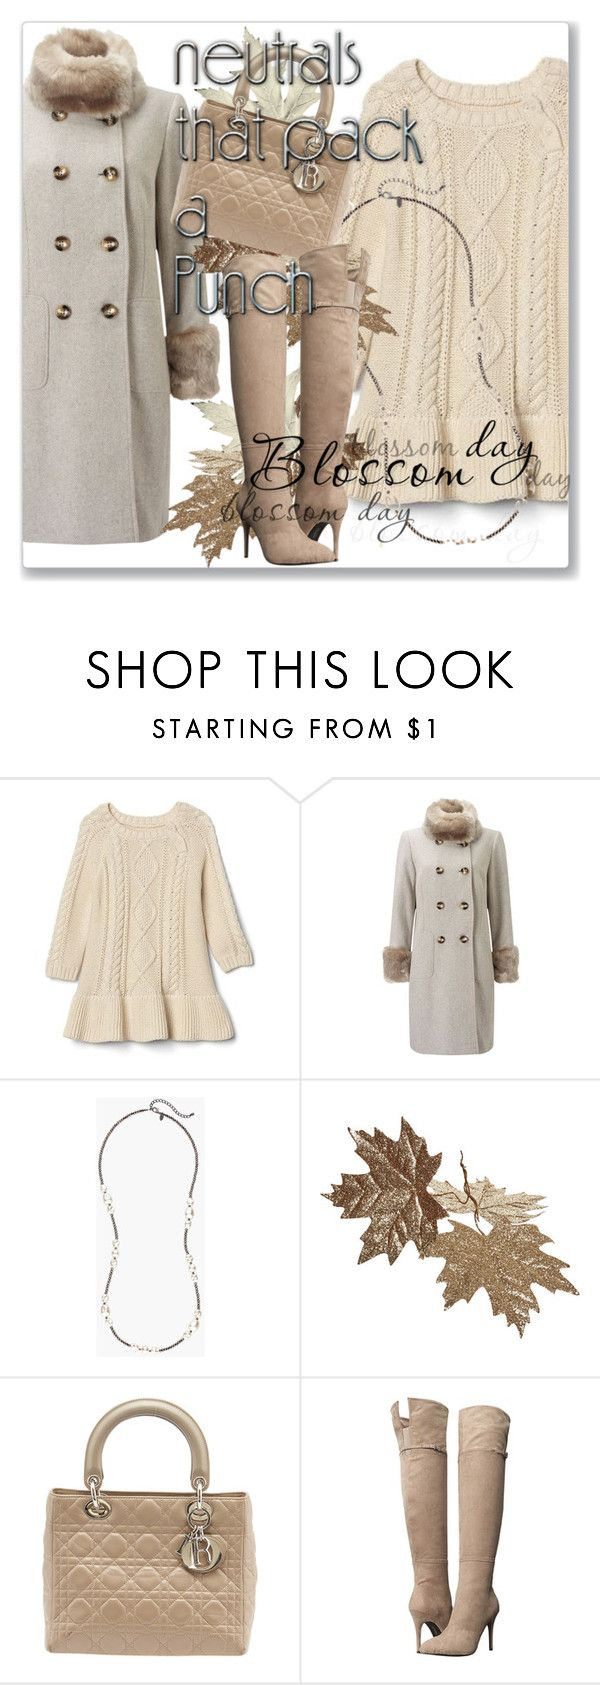 """""""Cool Neutrals"""" by andrejae ❤ liked on Polyvore featuring Gap, Jacques Vert, Chico's, Christian Dior, Chinese Laundry and neutrals"""